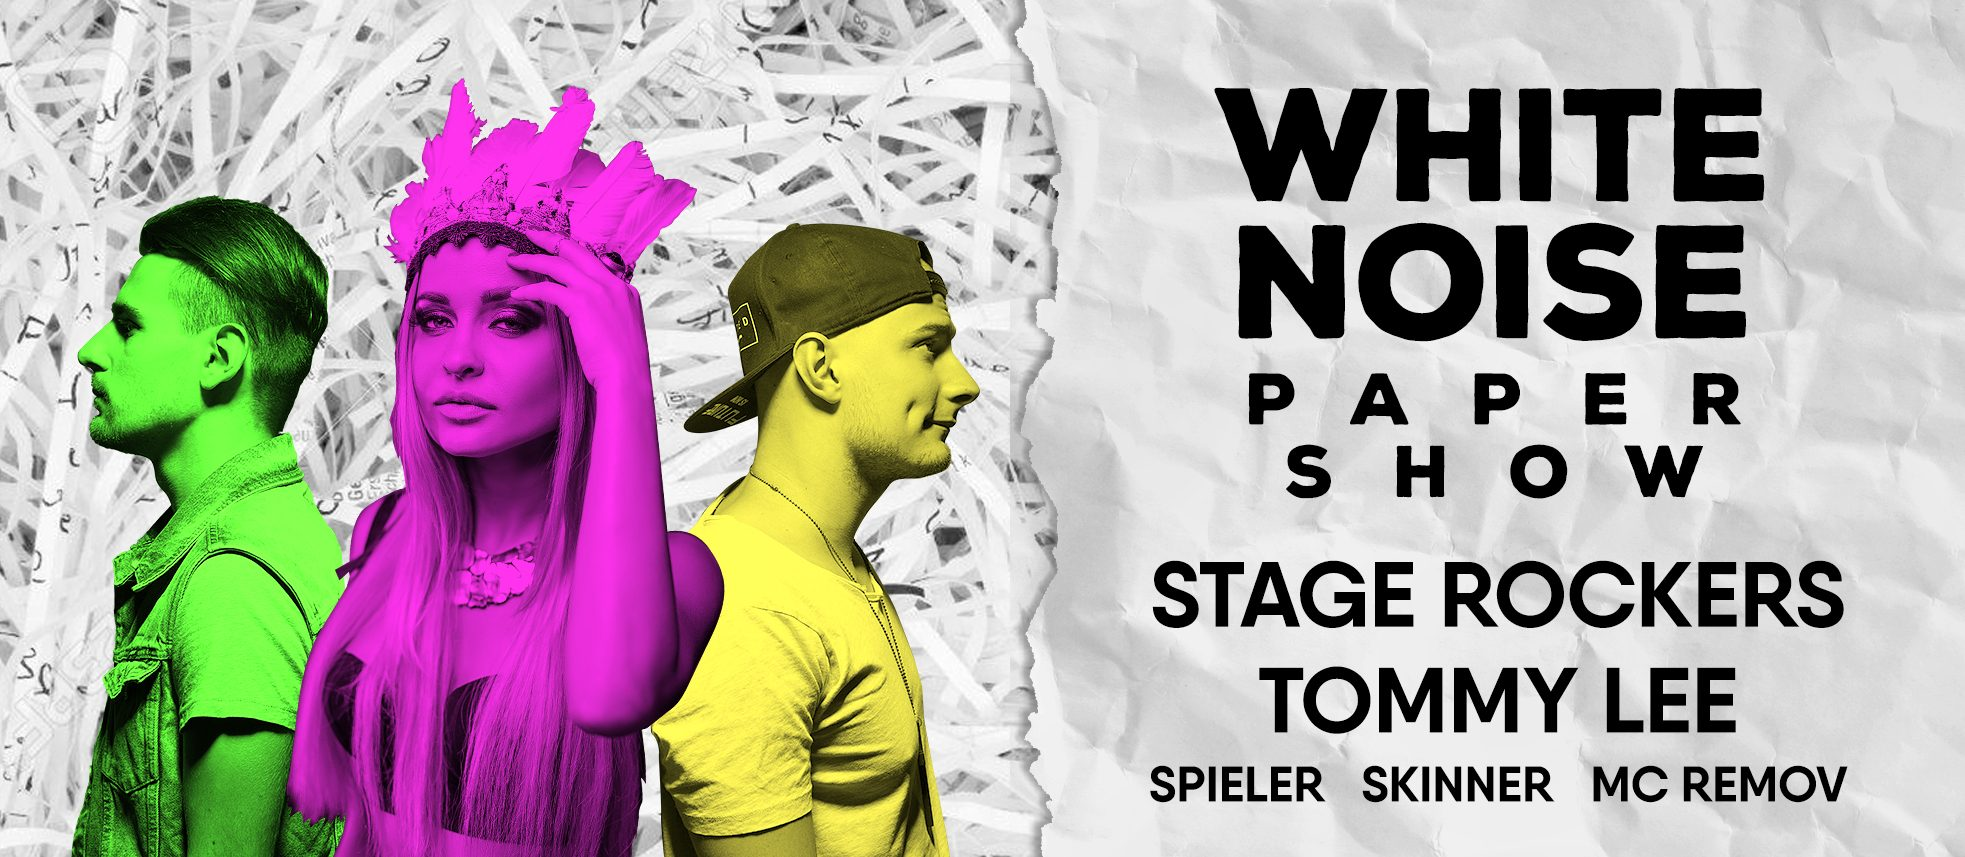 White Noise. Paper Show, StageRockers, Tommy Lee,